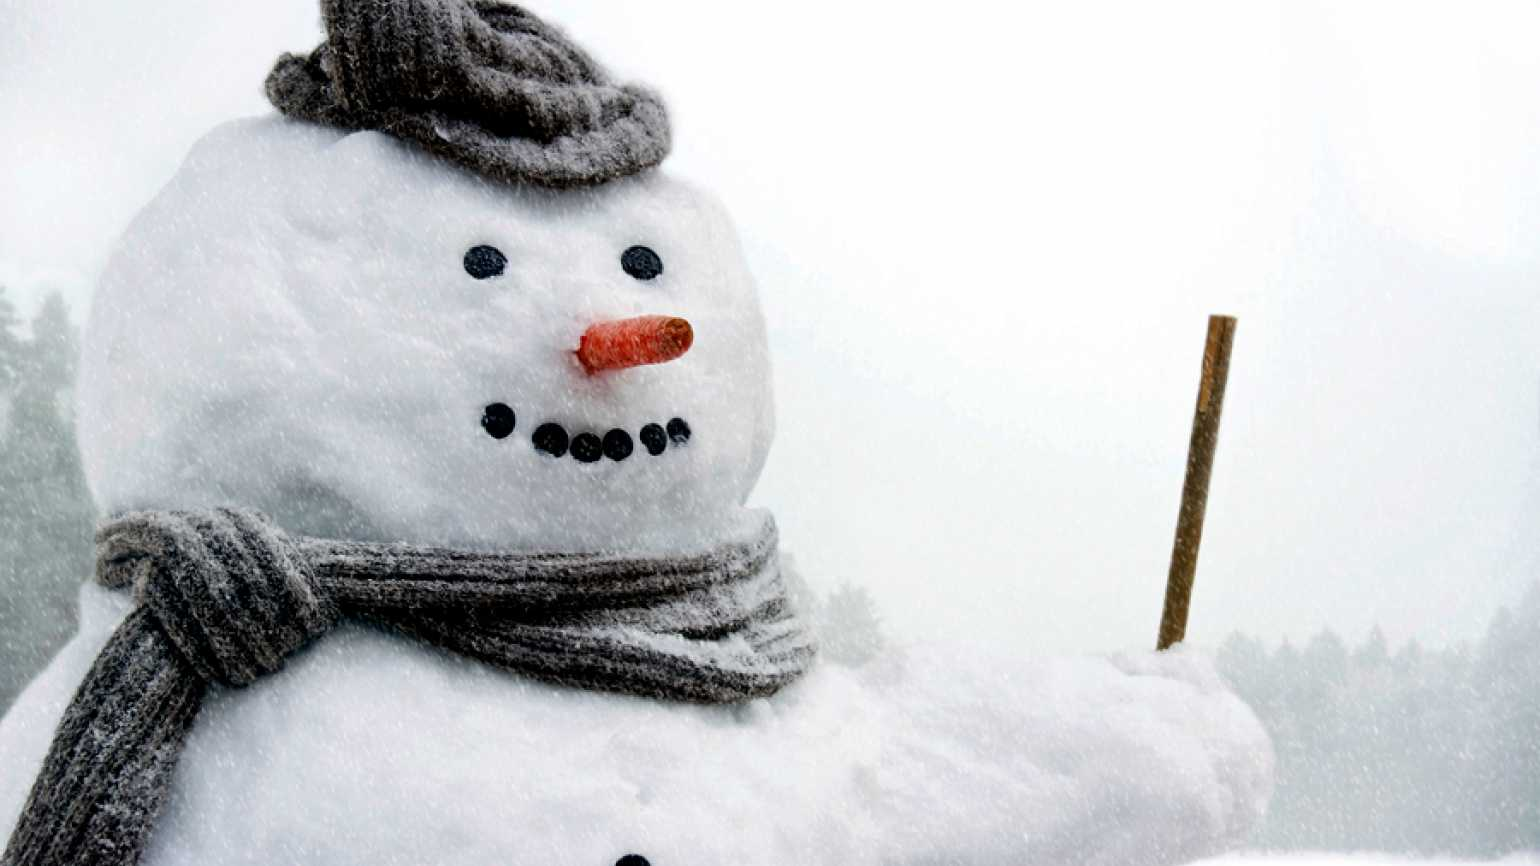 Guideposts: A jolly snowman with a woolen scarf and cap and a carrot for a nose